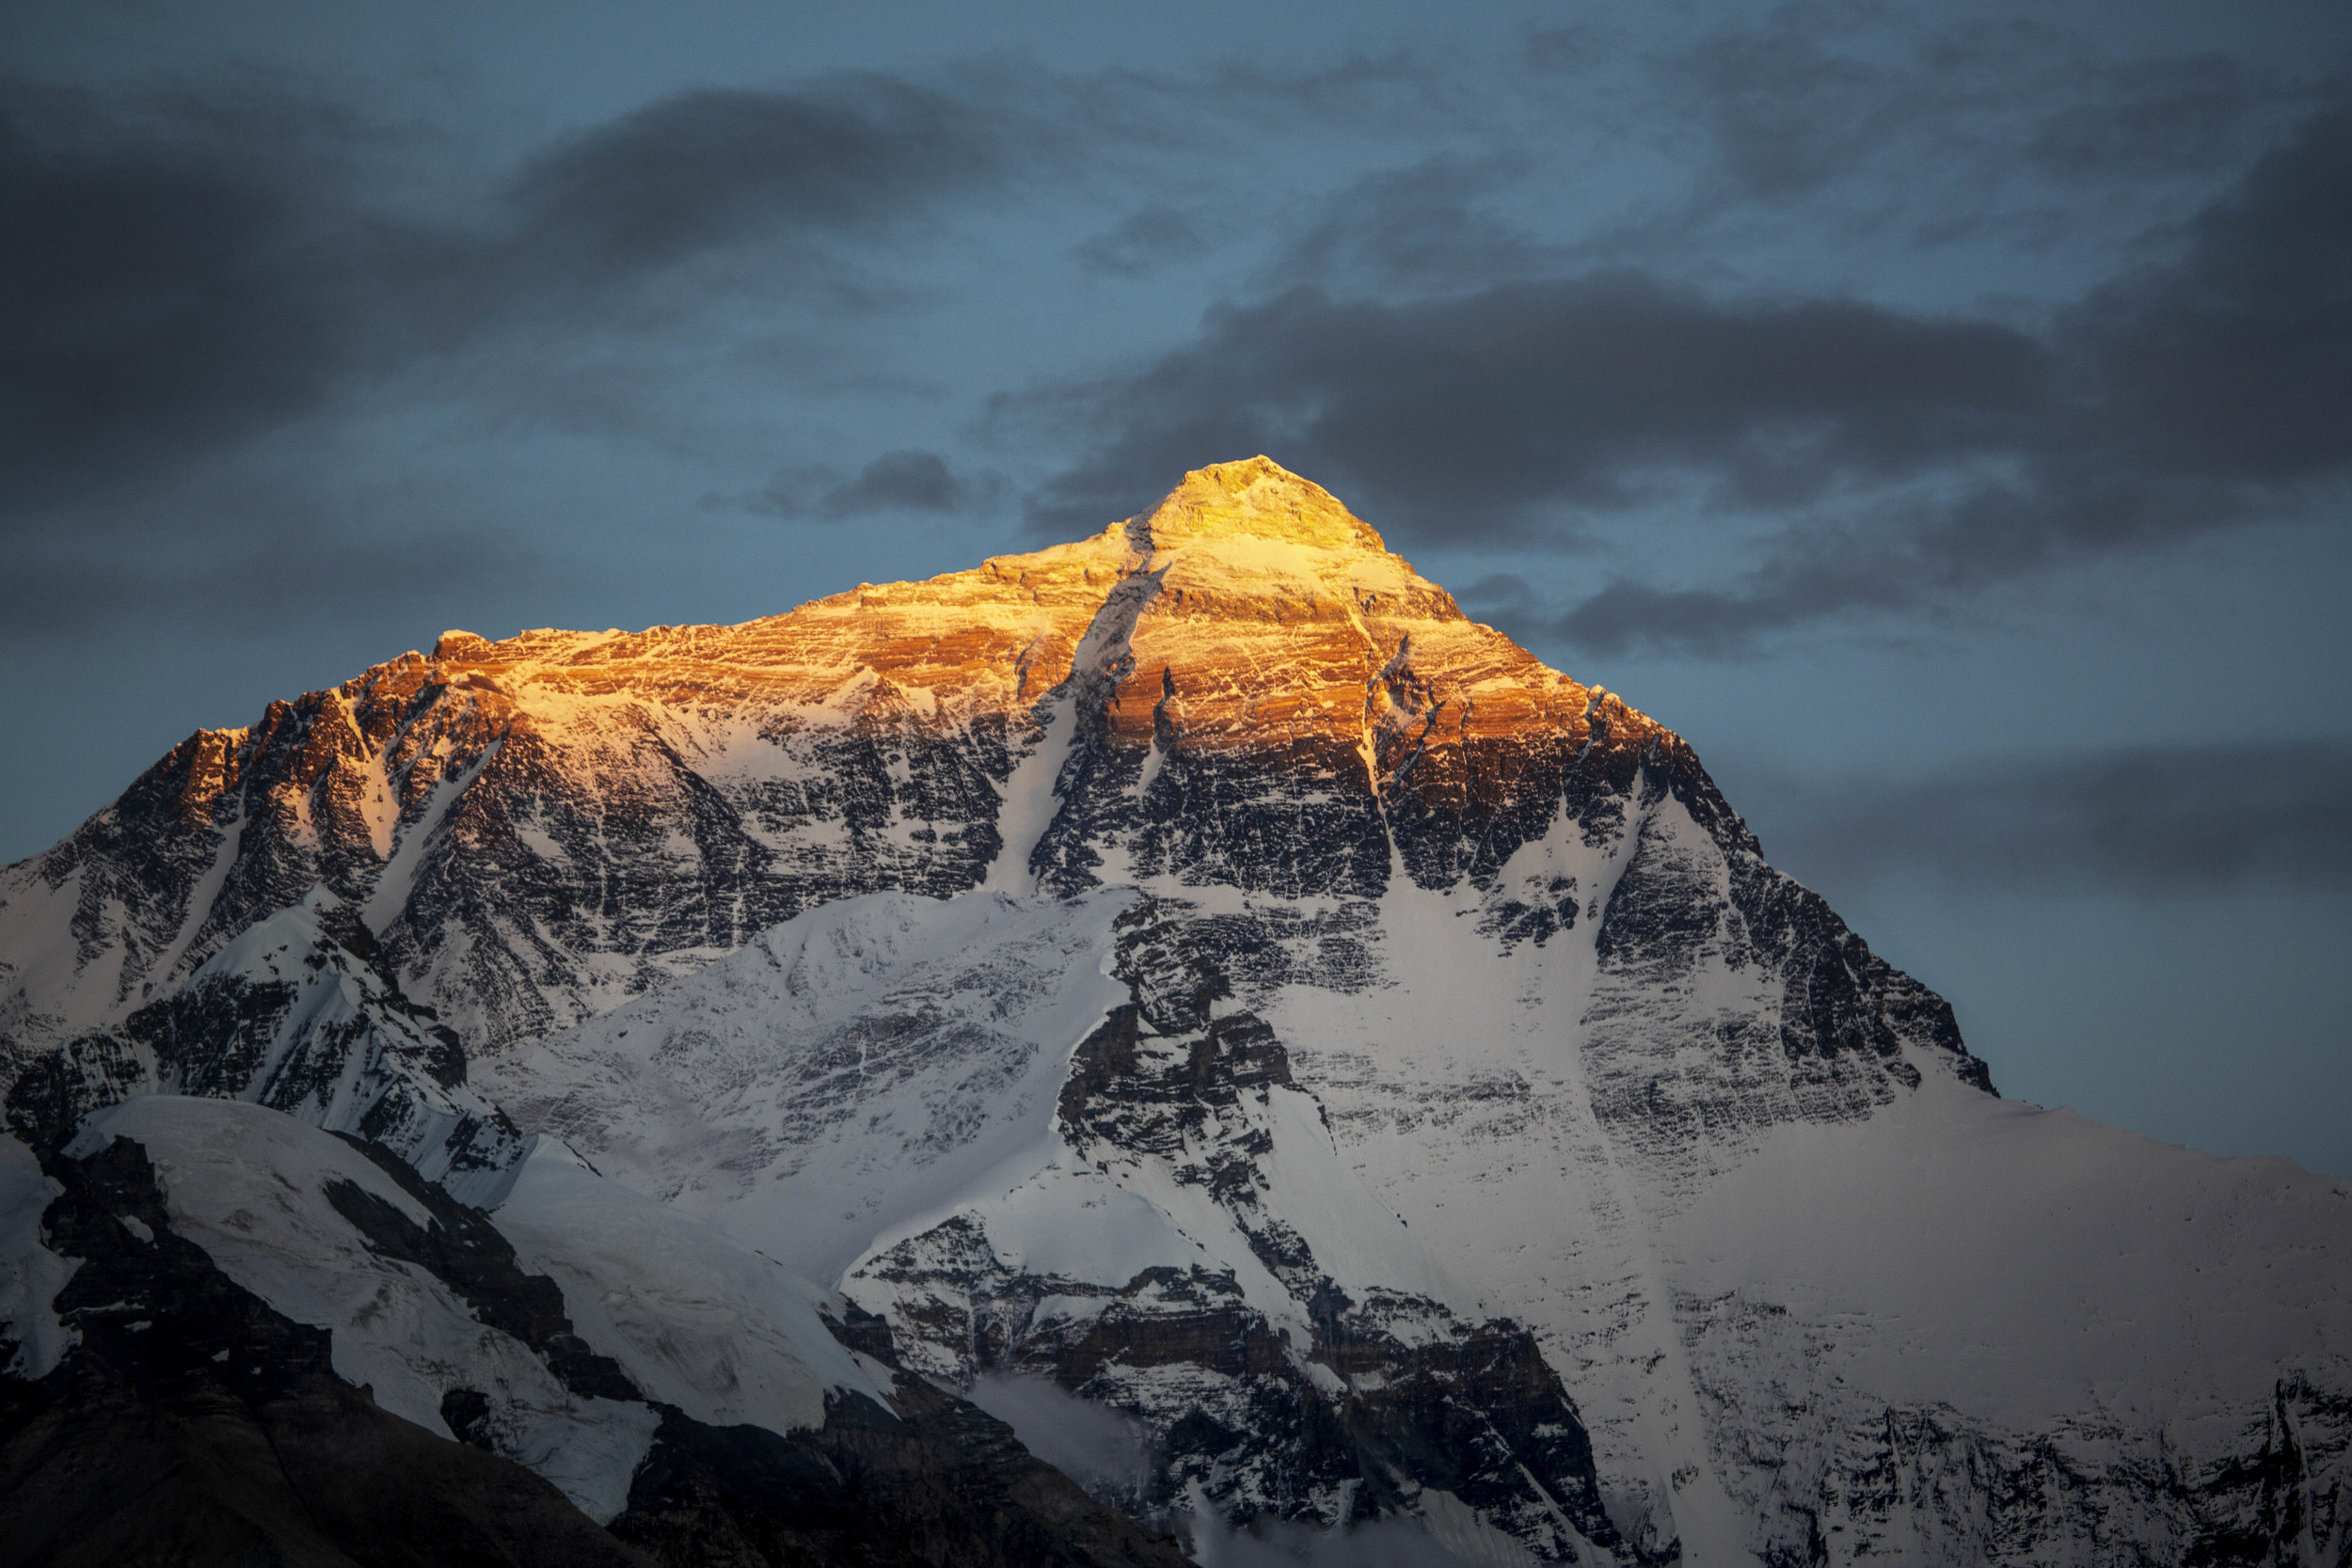 Chomolungma, the mother goddess. This is Mt. Everest.